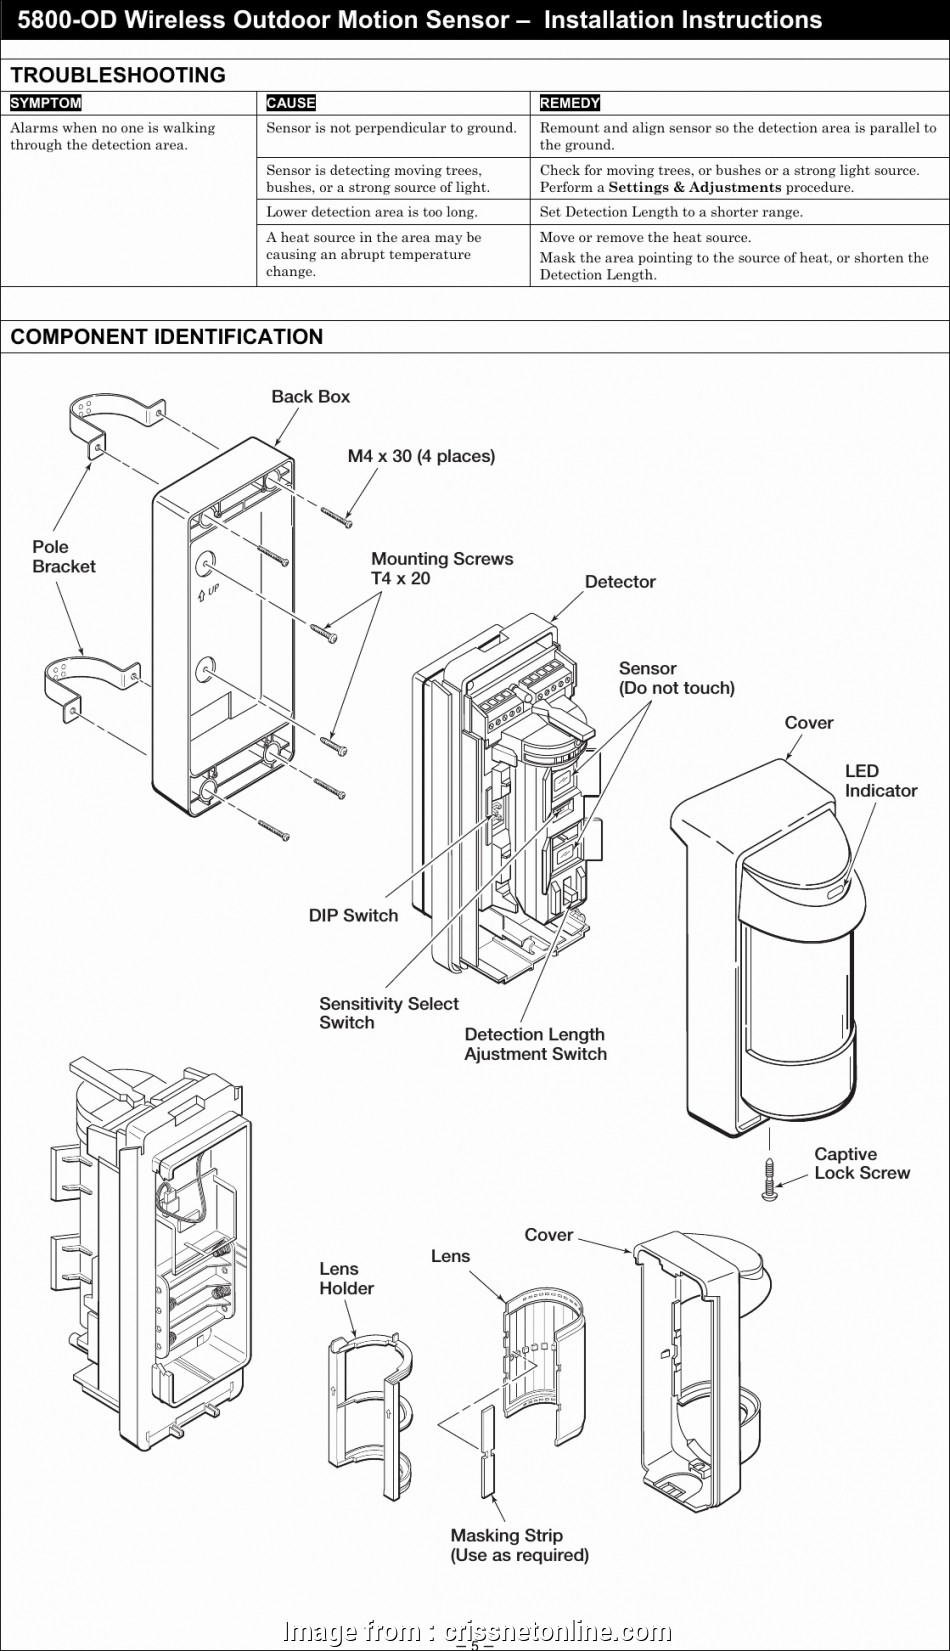 4 Way Switch Installation Manual Guide